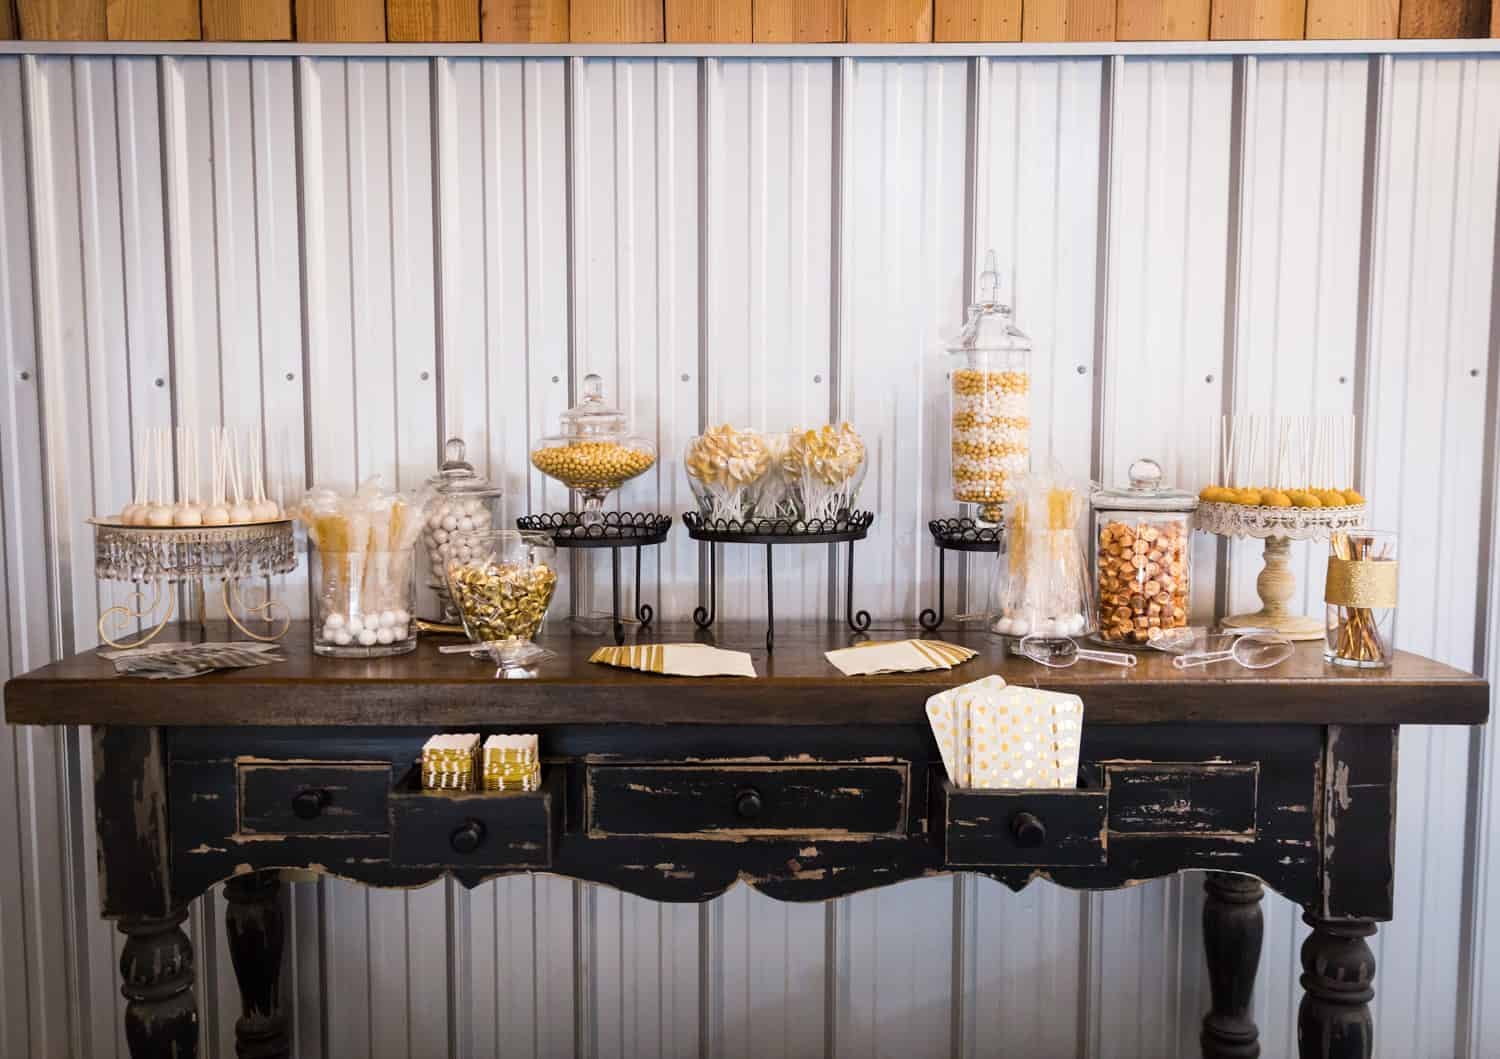 Candy buffet with gold-colored candies on table